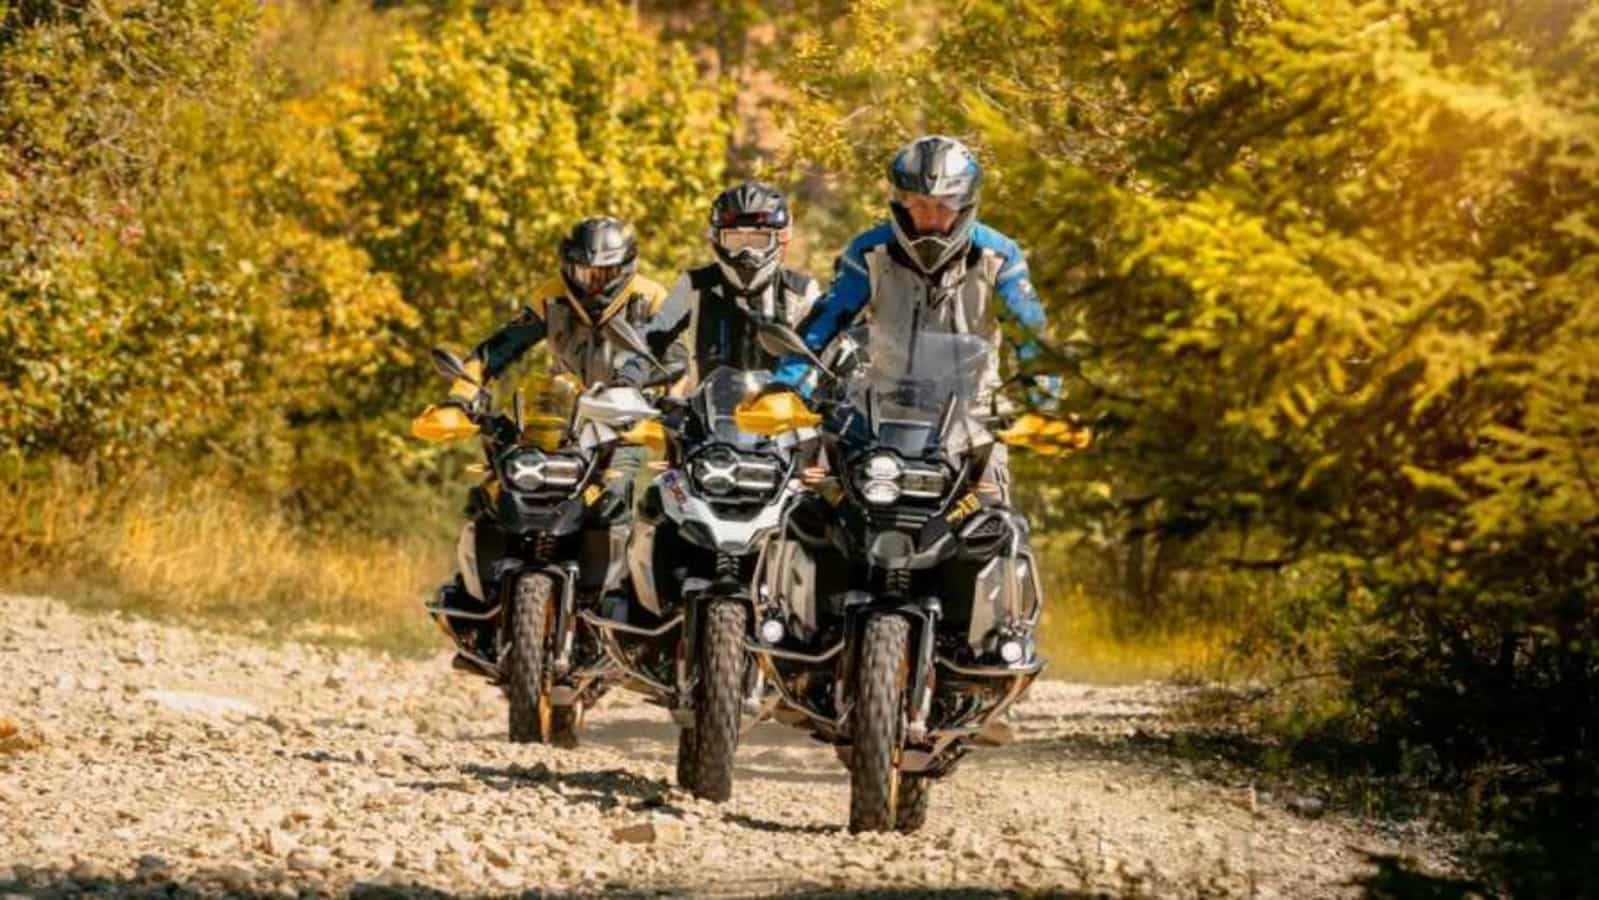 BMW launches new BMW R 20 GS, BMW R 20 GS Adventure ...